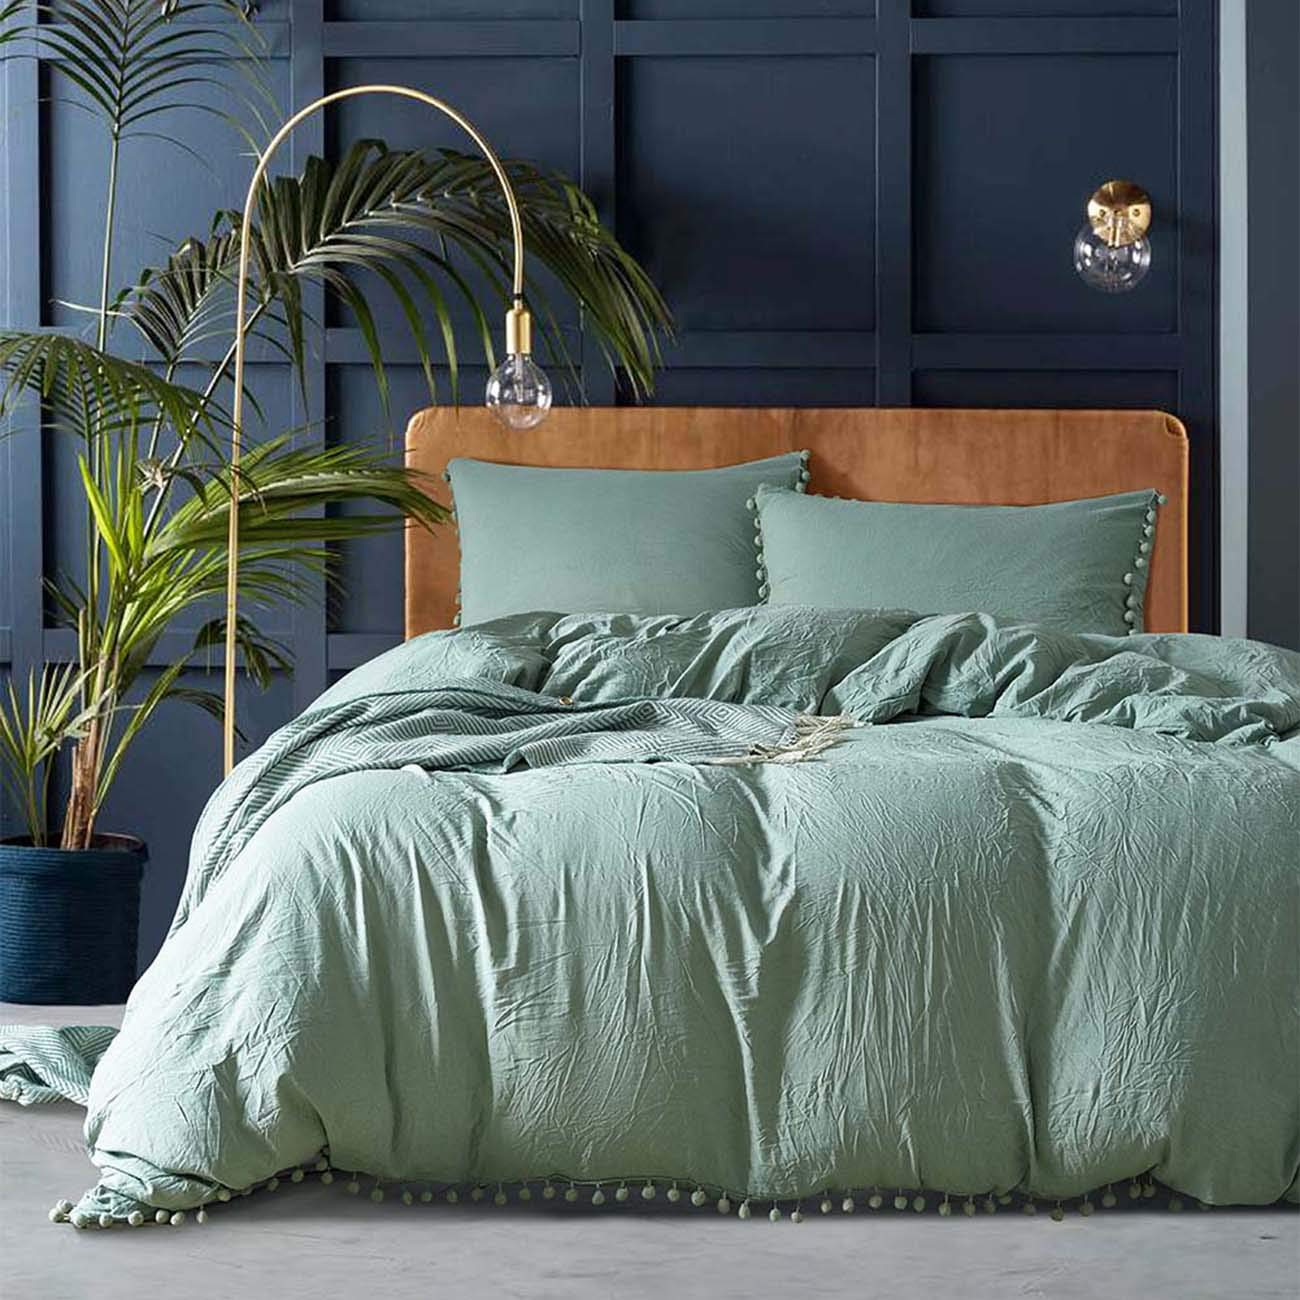 OWMMIZ Bedding Duvet Cover Set, Washed Microfiber Quilt Duvet Cover - Comfortable Cover with Pompon Tassels and 2 Pillow Shams, Queen Size Duvet Cover,Green